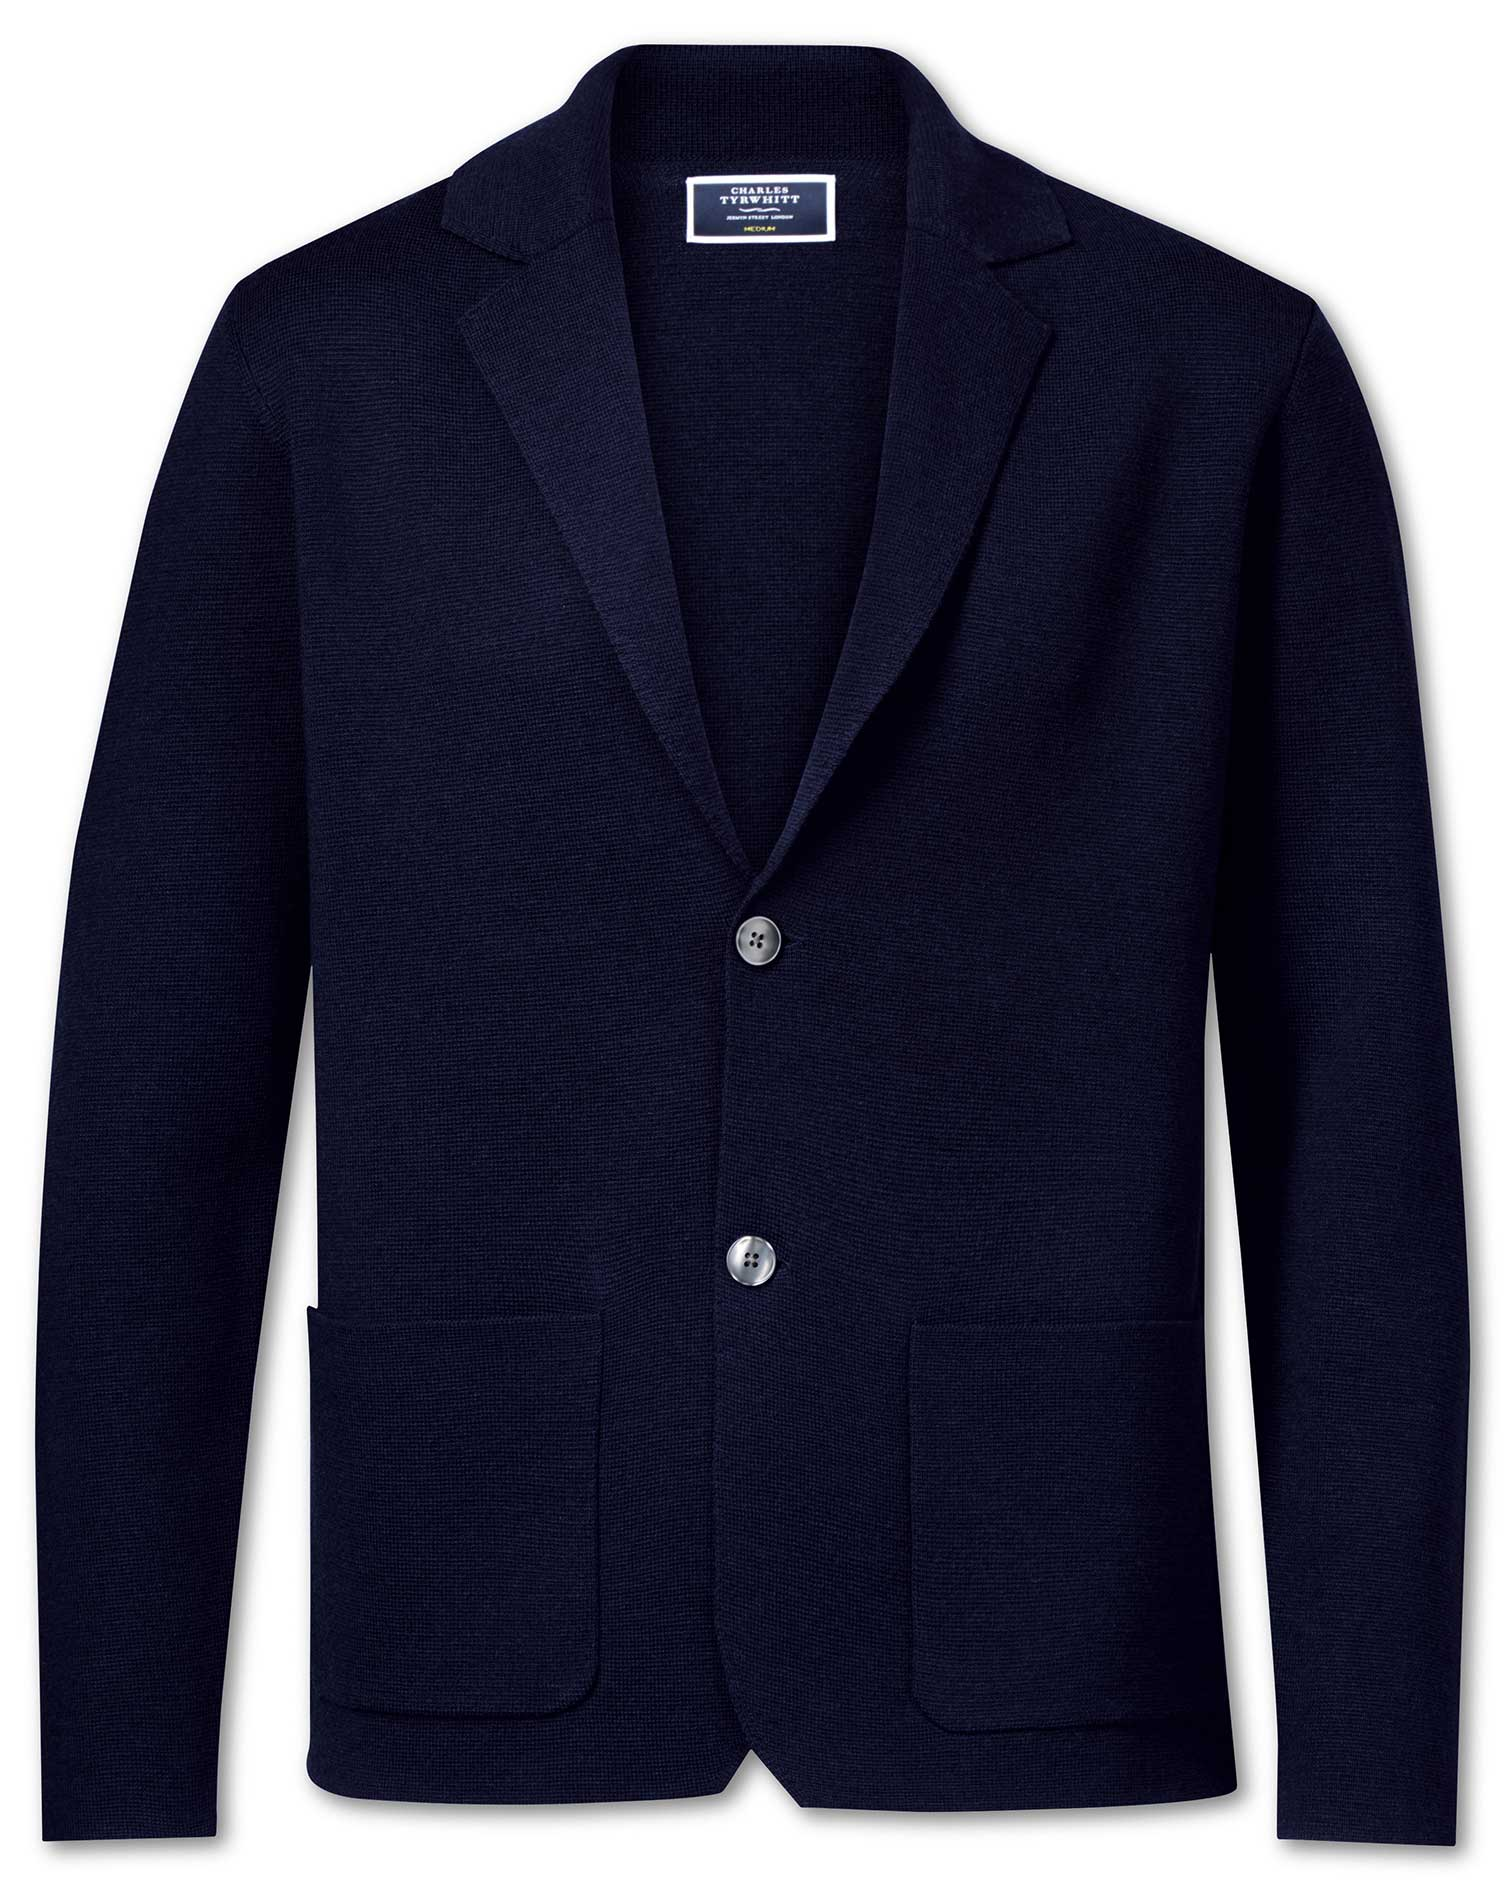 Navy Merino Wool Blazer Size Medium by Charles Tyrwhitt